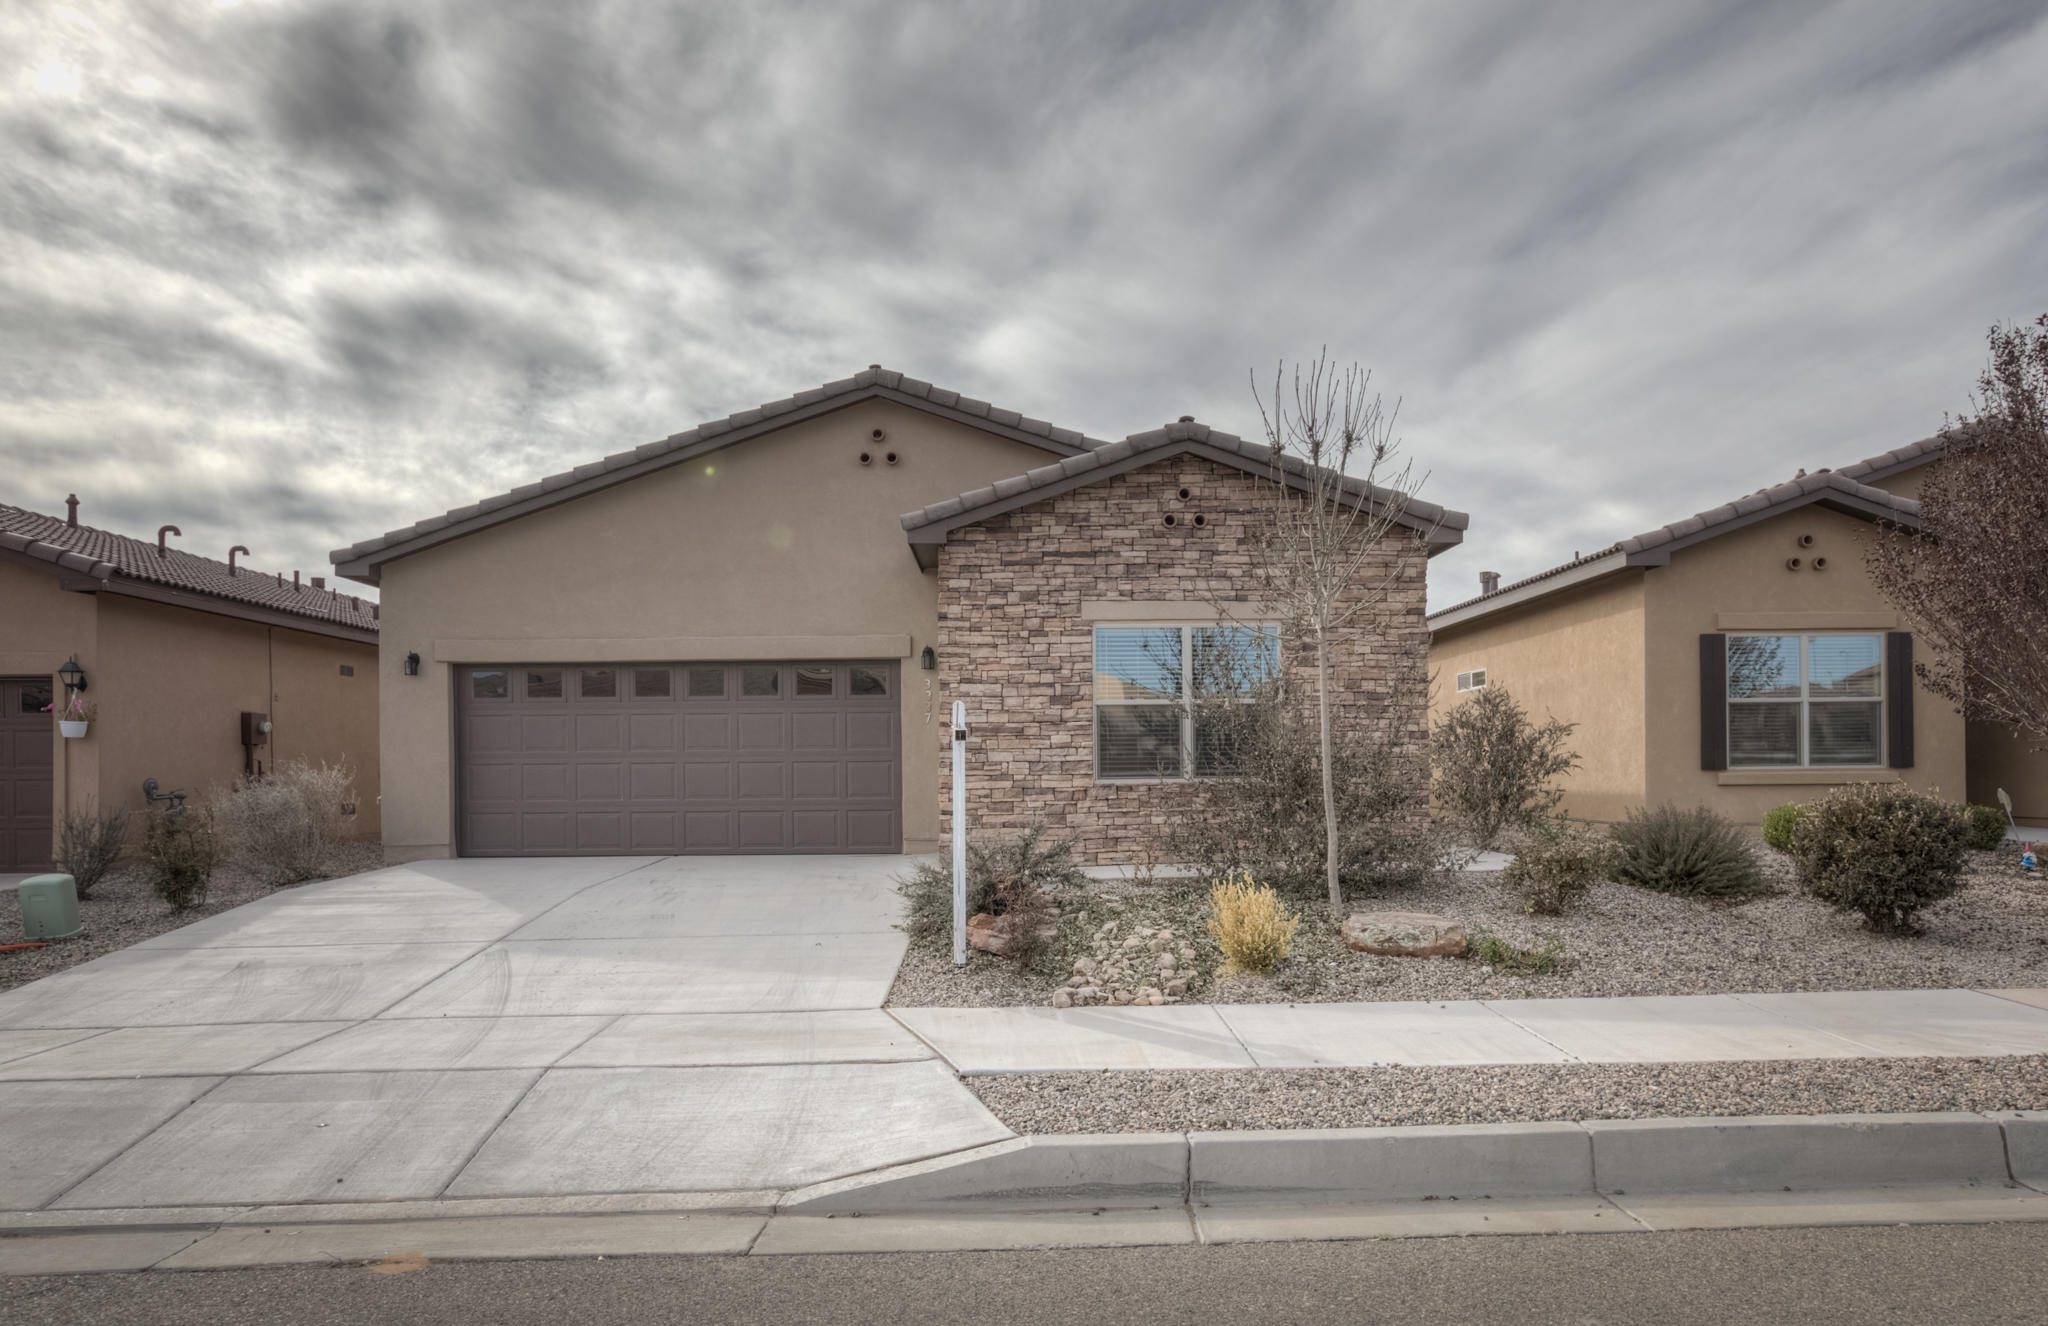 Recently Built home (2017) in the wonderful Loma Colorado neighborhood of Rio Rancho. The moment you step inside find stunning warm-hued farmhouse style laminate floors. Pass into the kitchen which is the heart of the home!  Kitchen is open and  pristine and features: Farmhouse sink, bronze fixtures & hardware, gorgeous white cabinets, stainless appliances, glass splash, & Silestone kitchen counters w/ bar.  Bathrooms have been upgraded with beautiful tile surrounds & dual sinks. The home has an amazing layout and flow and the bedrooms are all large. Laundry room is also oversized. Back patio is covered and features extended brick patio and is fully landscaped.  Home backs to an arroyo, w/ no rear neighbors, additional privacy, STUNNING views. Energy efficient/ Certified Silver built.